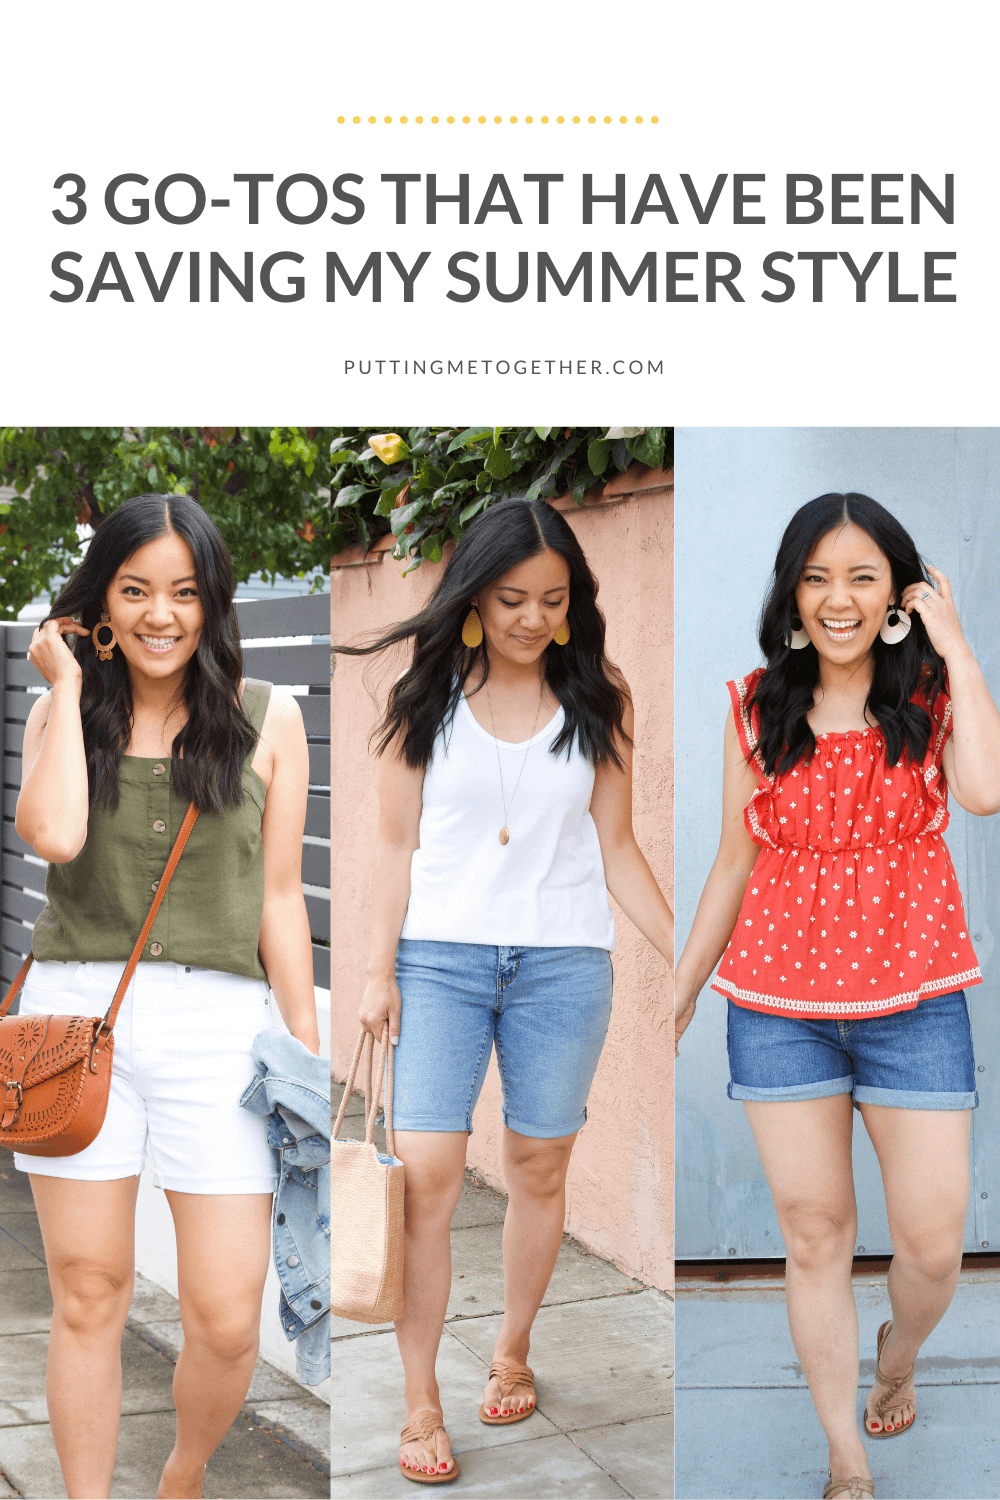 3 Go-Tos for Summer Style